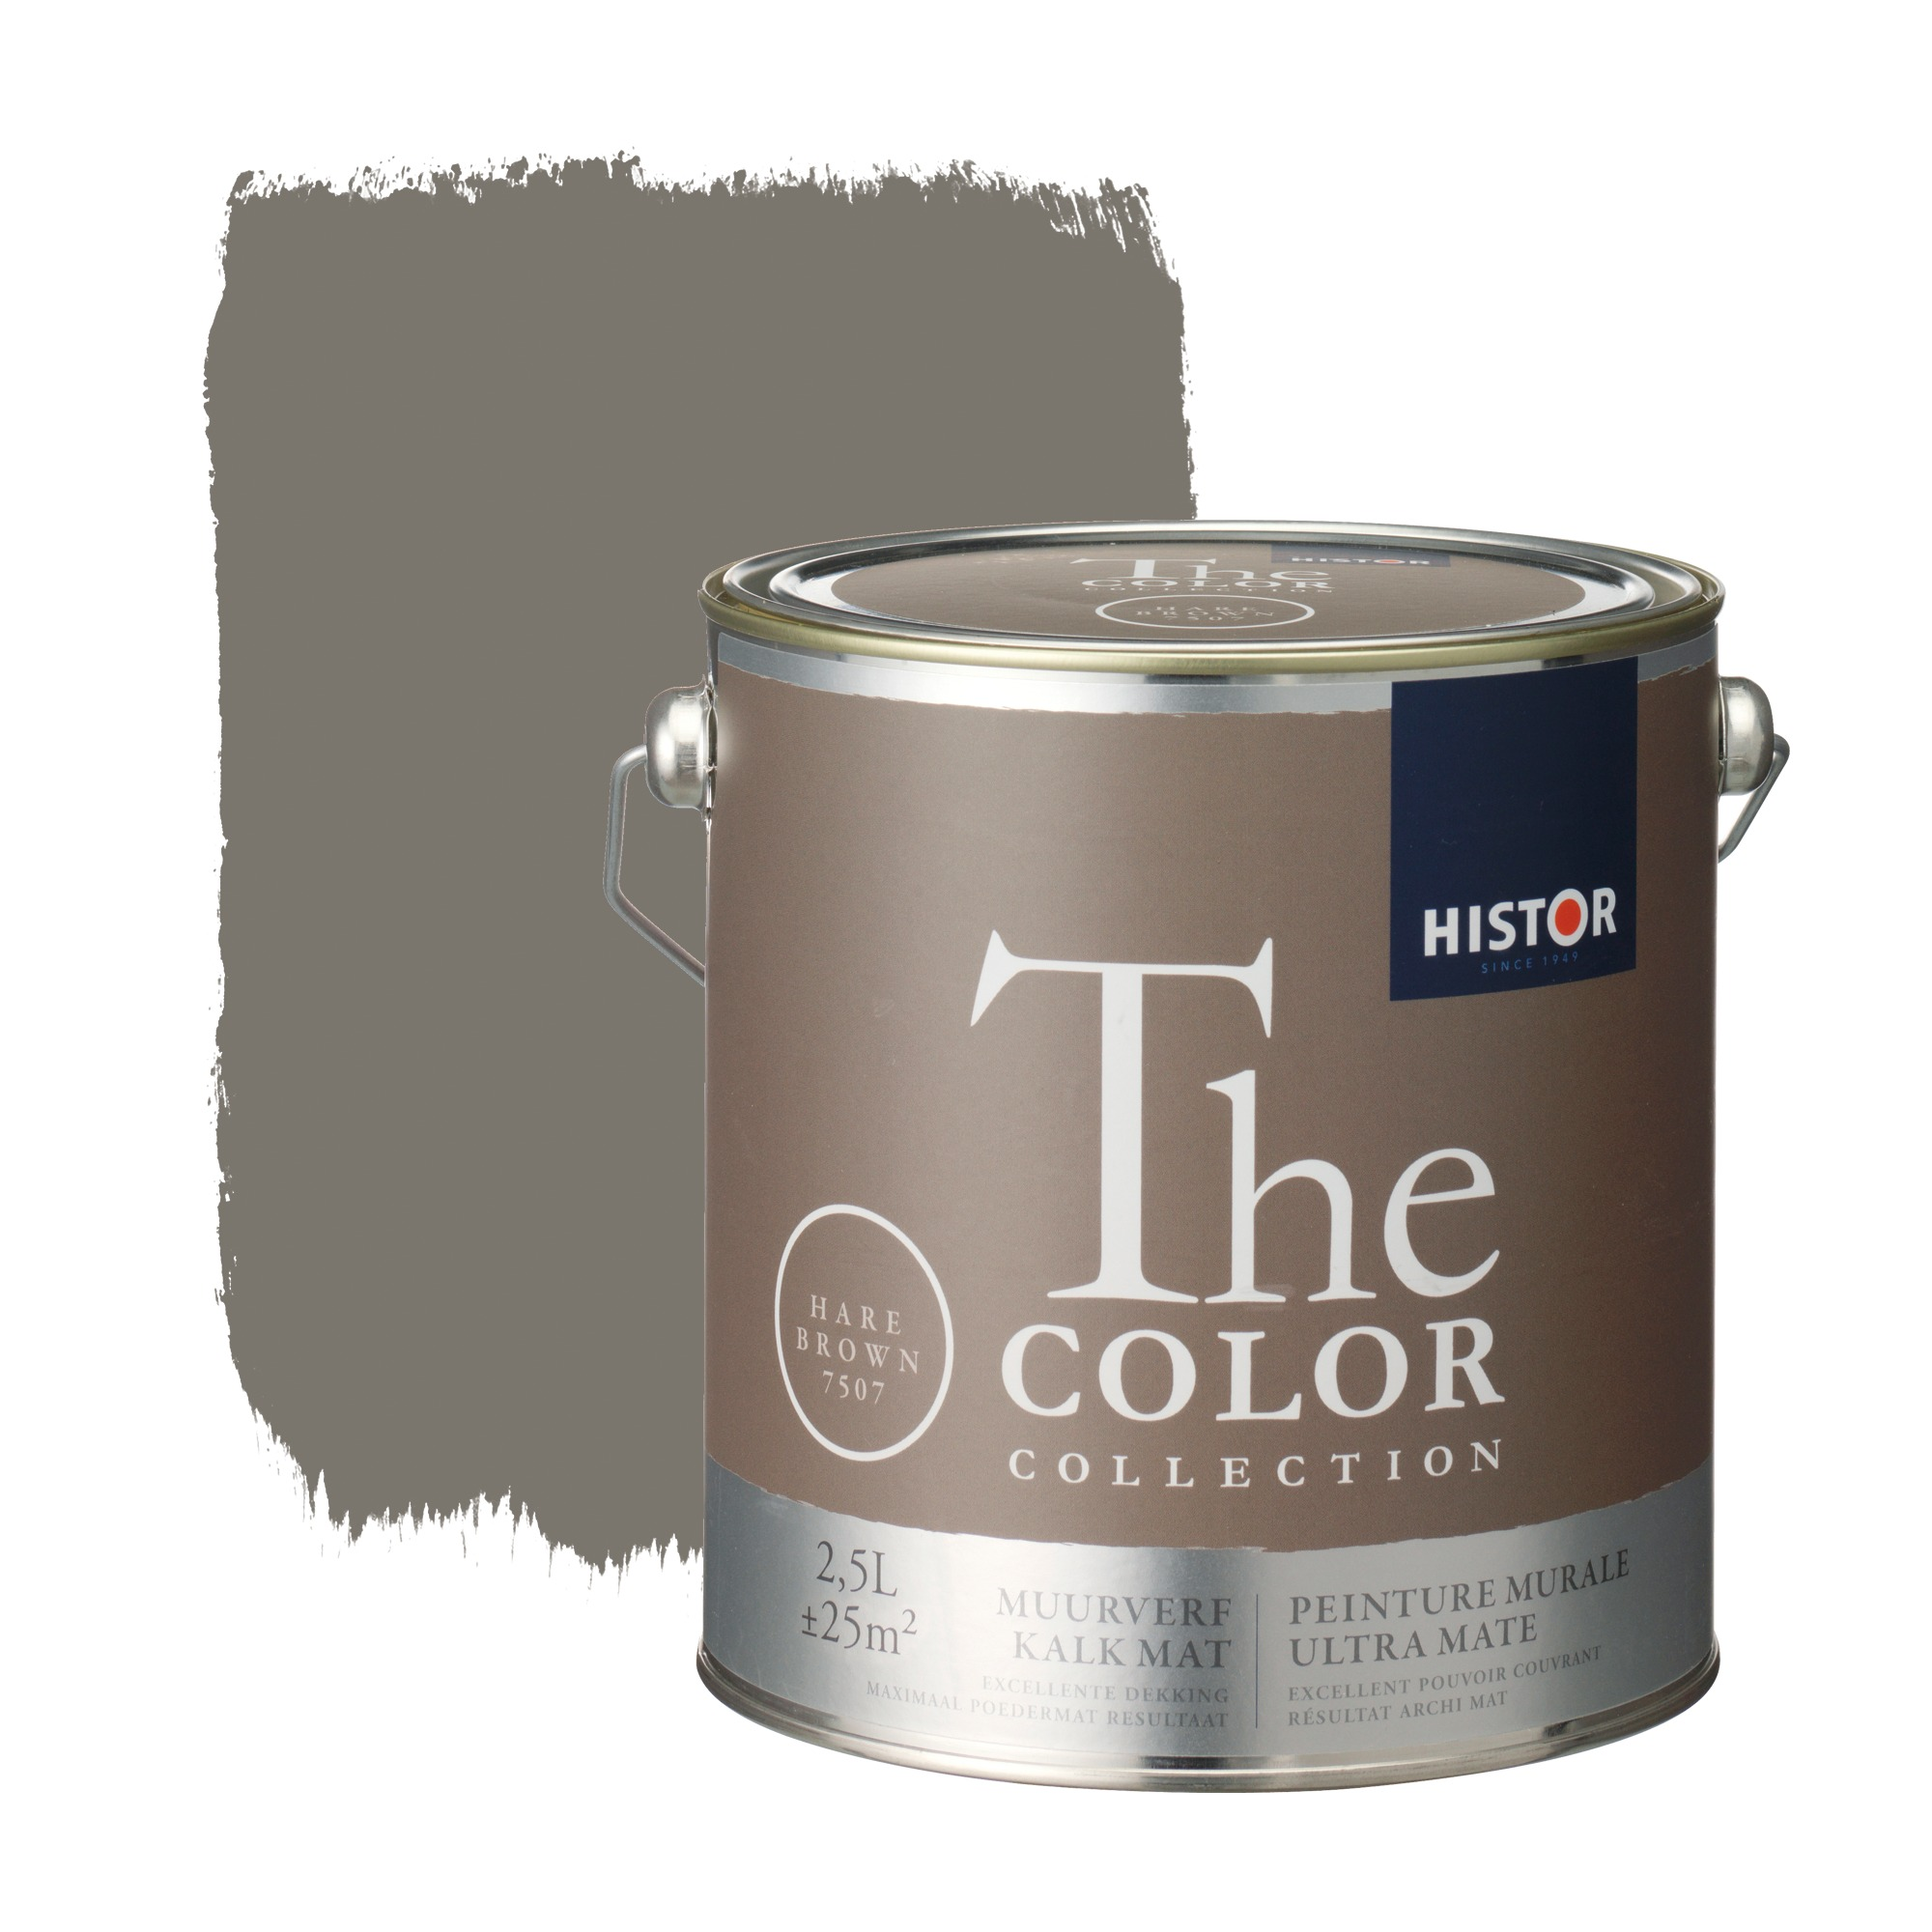 Histor the color collection muurverf kalkmat hare brown 7507 2,5 l